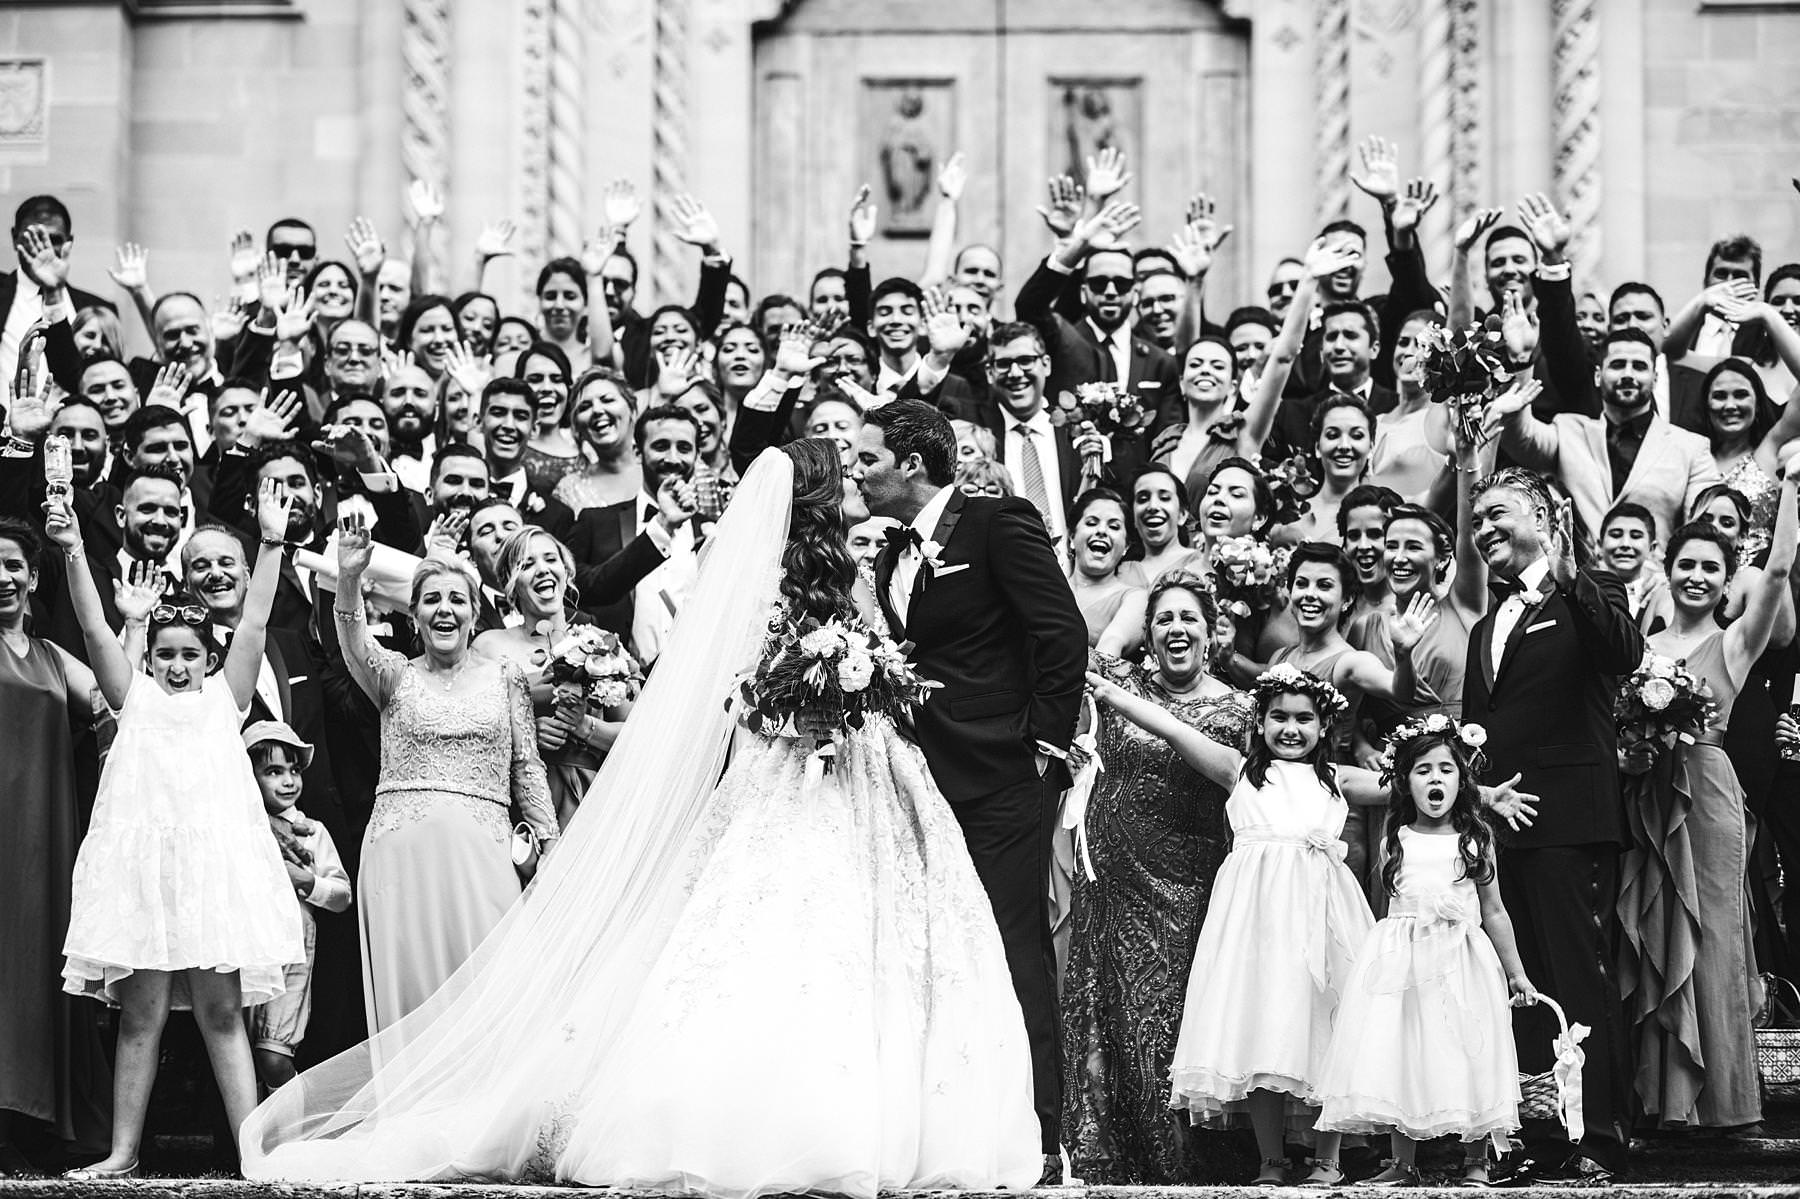 Rippling and sumptuous Tuscany wedding in the elegant Castle of Valenzano. Timeless and charm elegant bride and groom group photo at Arezzo Cathedral